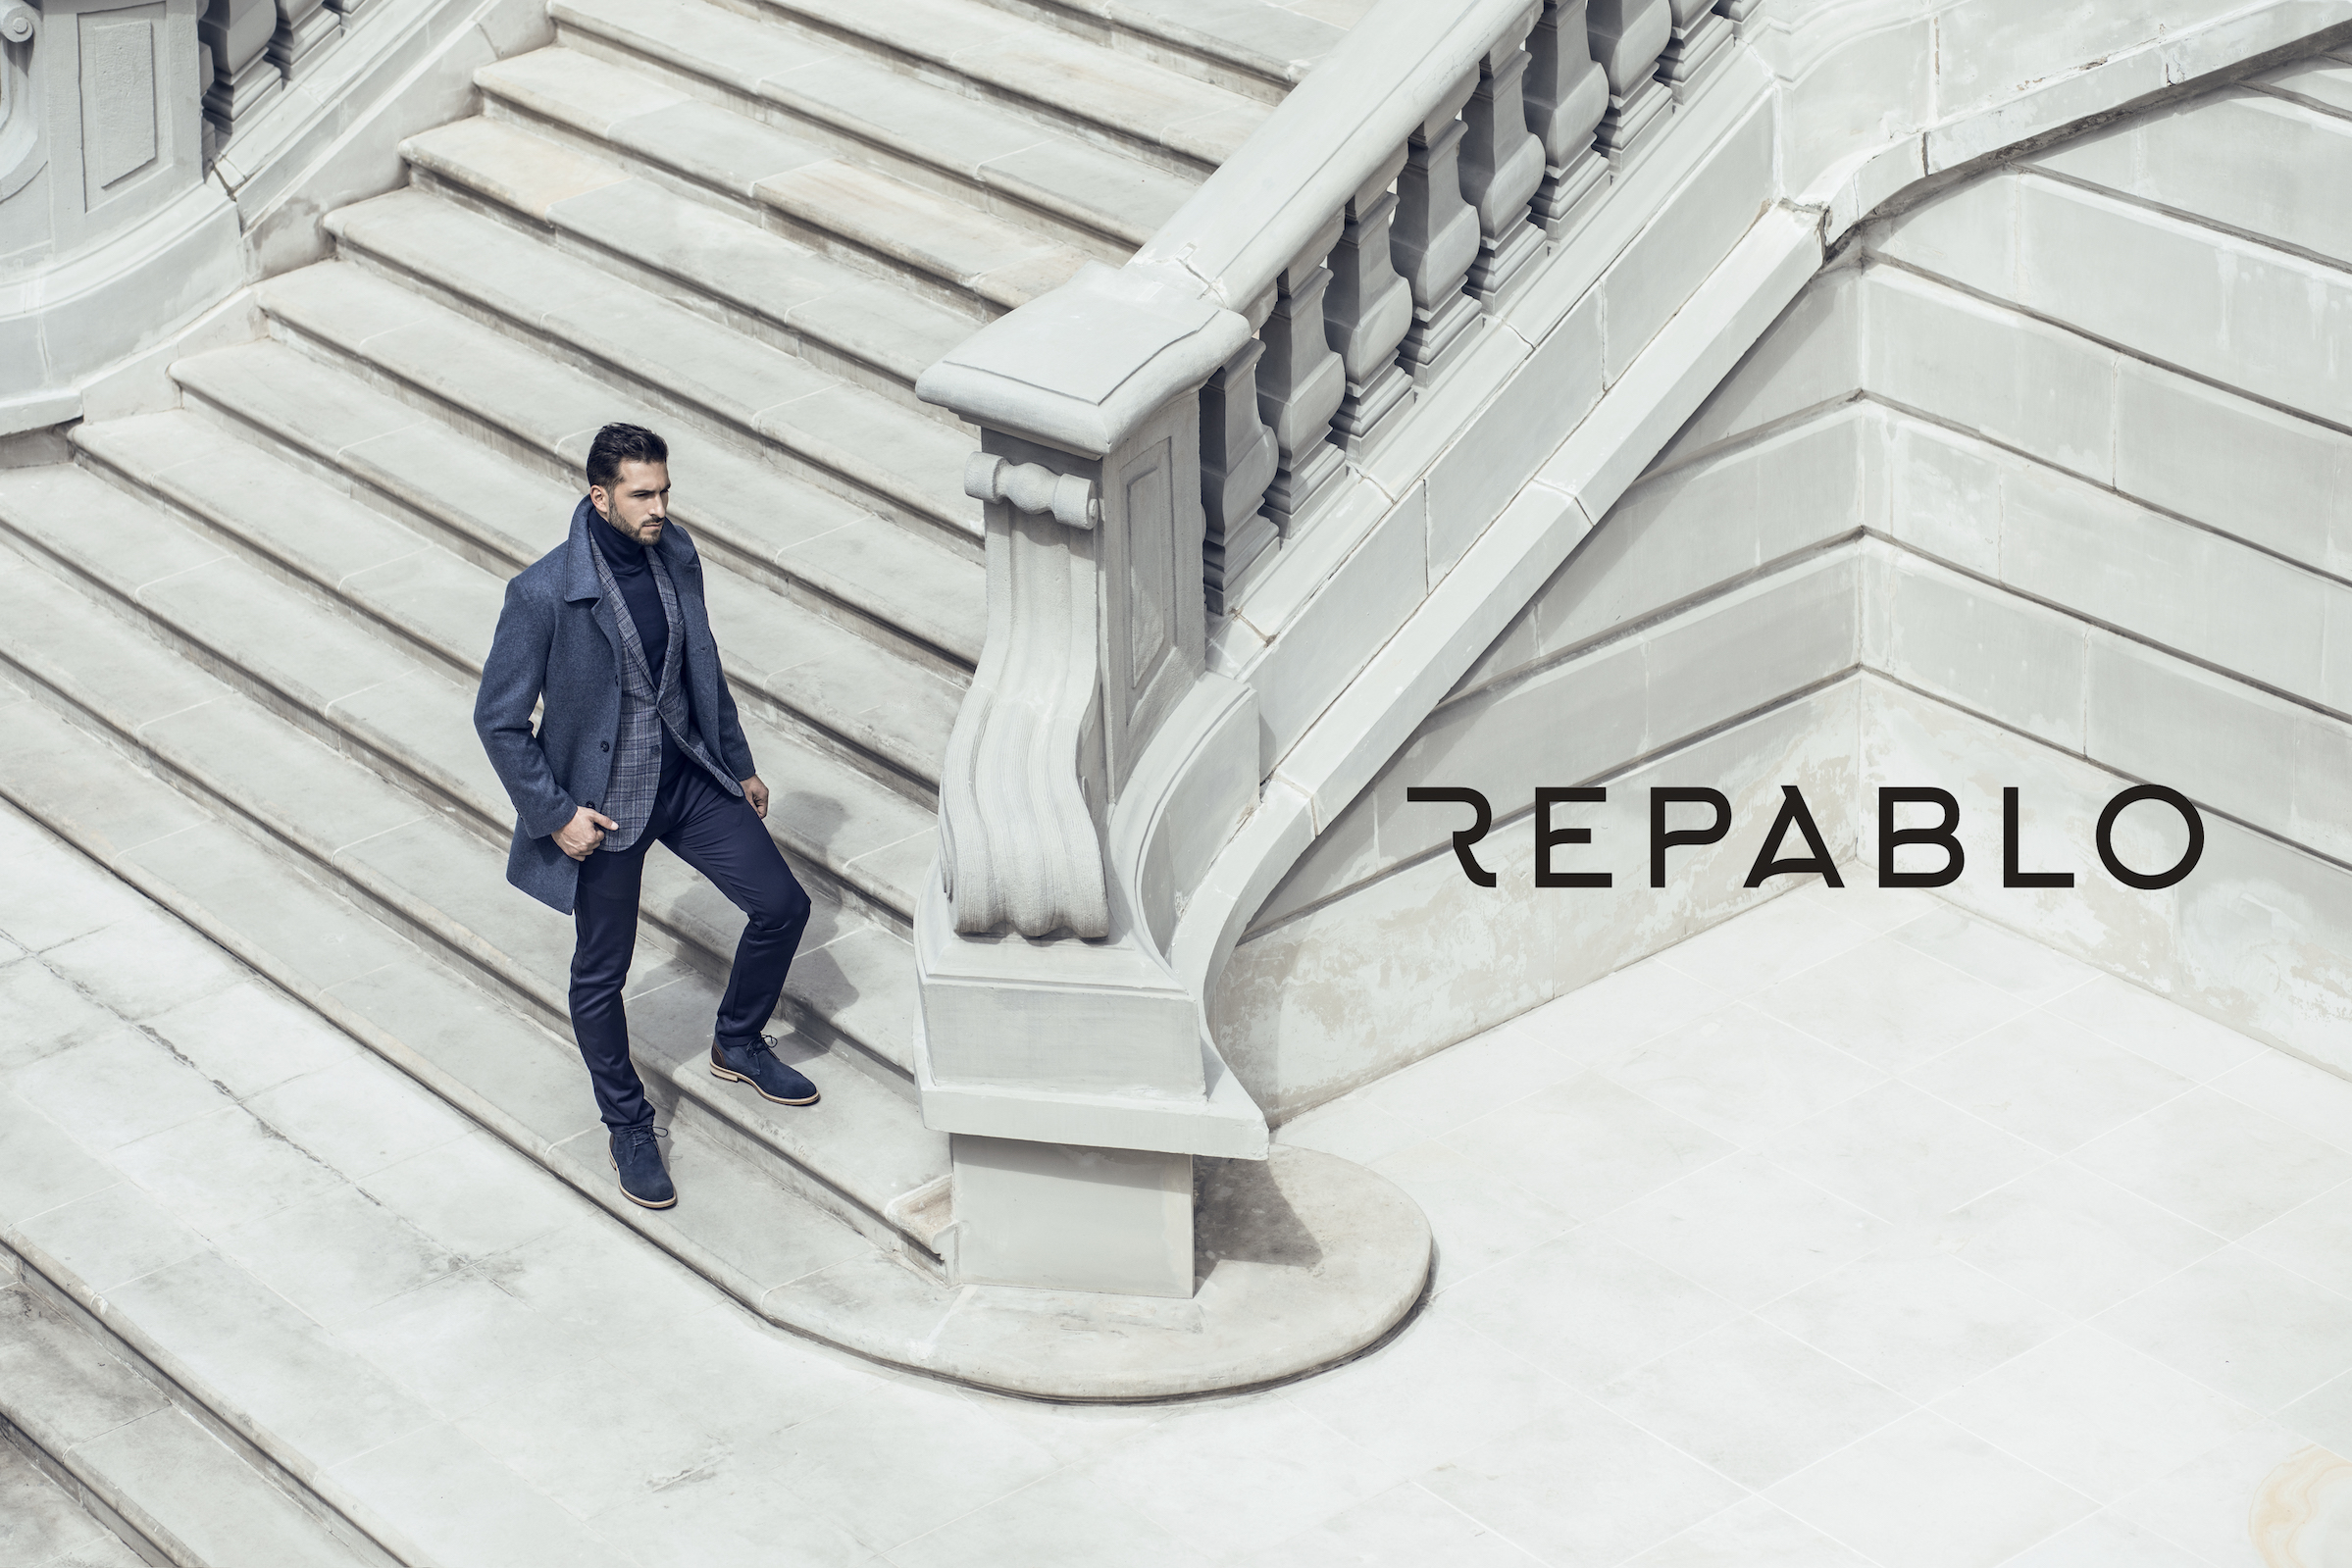 Repablo_AW18_ASerge_layout_08 copy.jpg